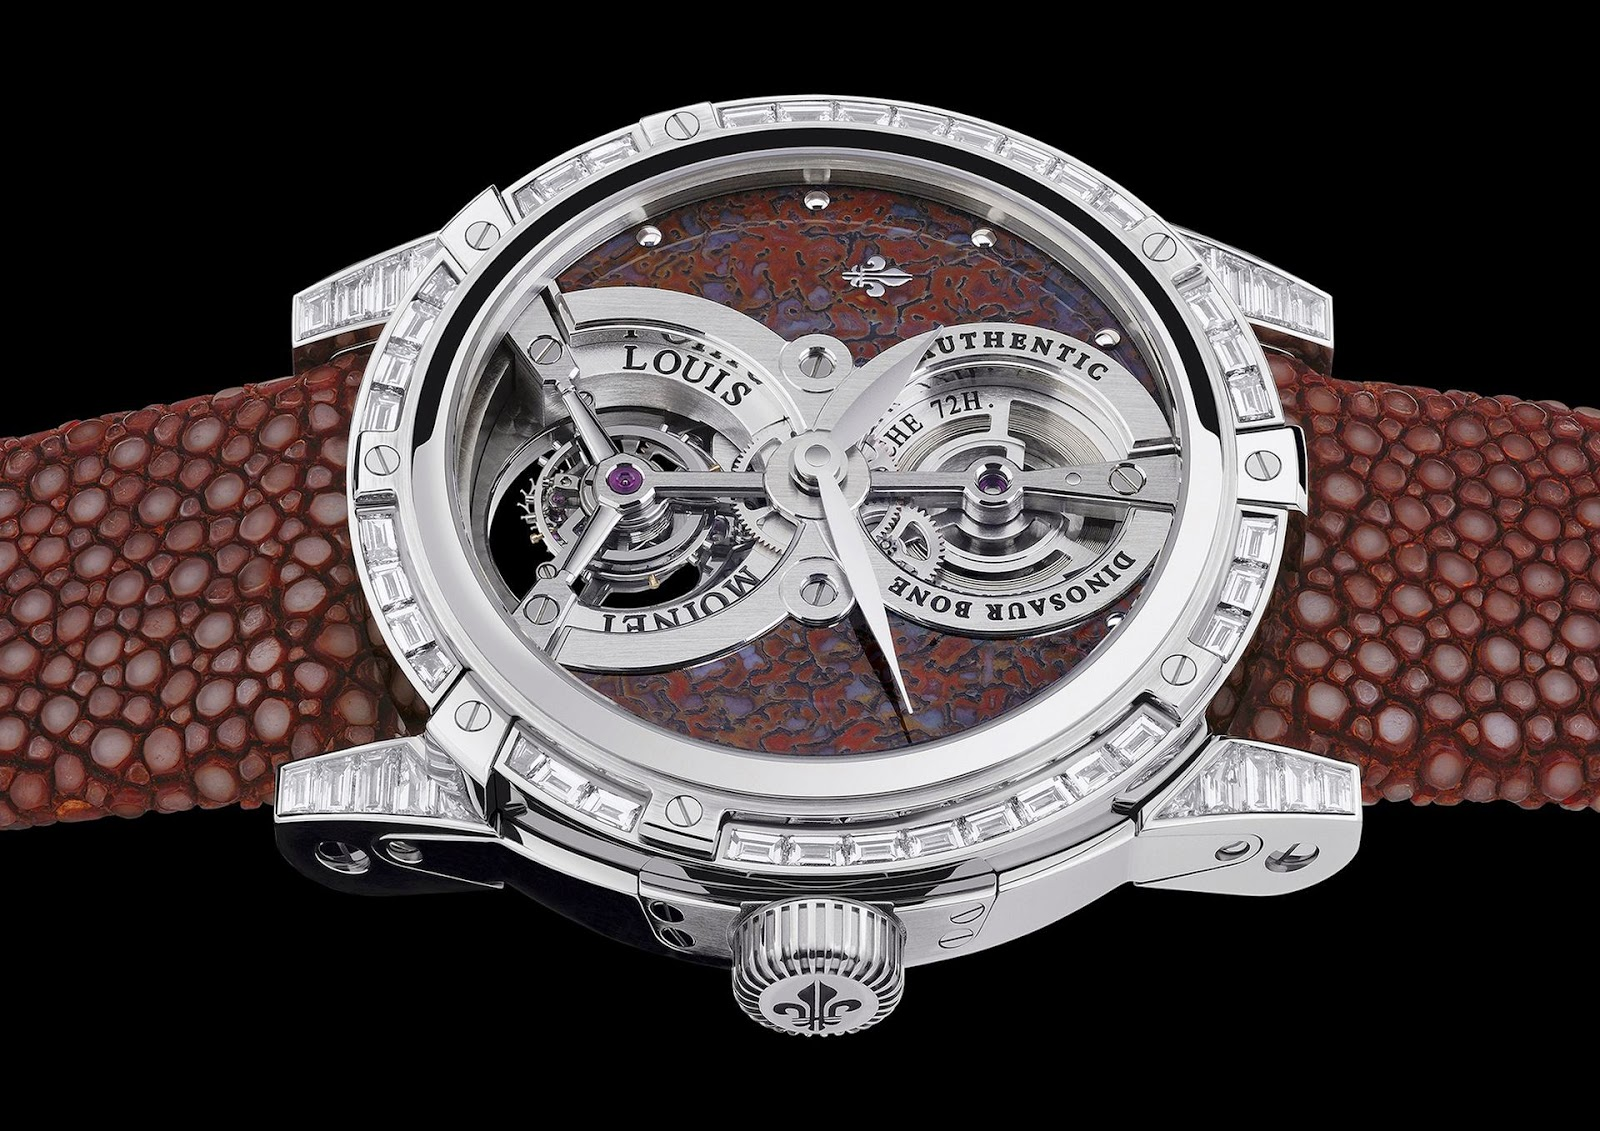 Louis Moinet Time Explorator Tourbillon watch replica